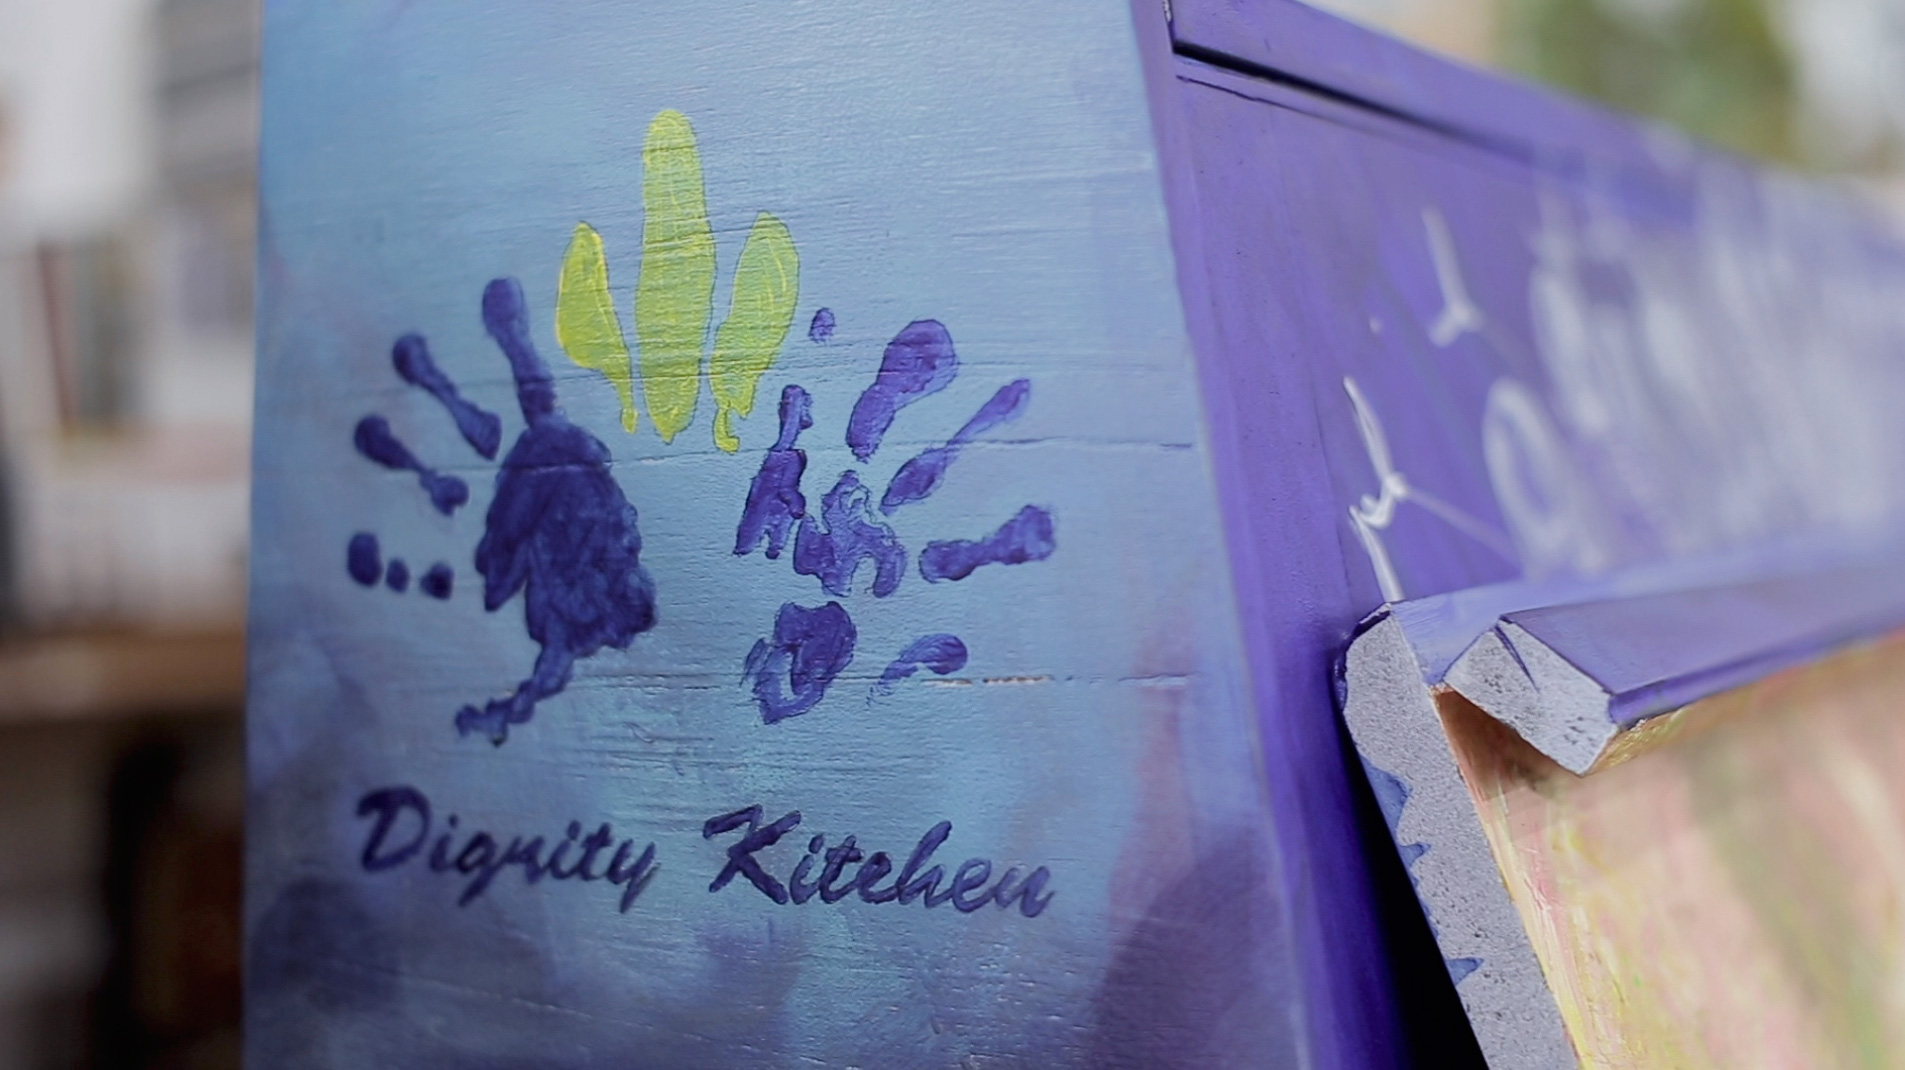 Dignity Kitchen